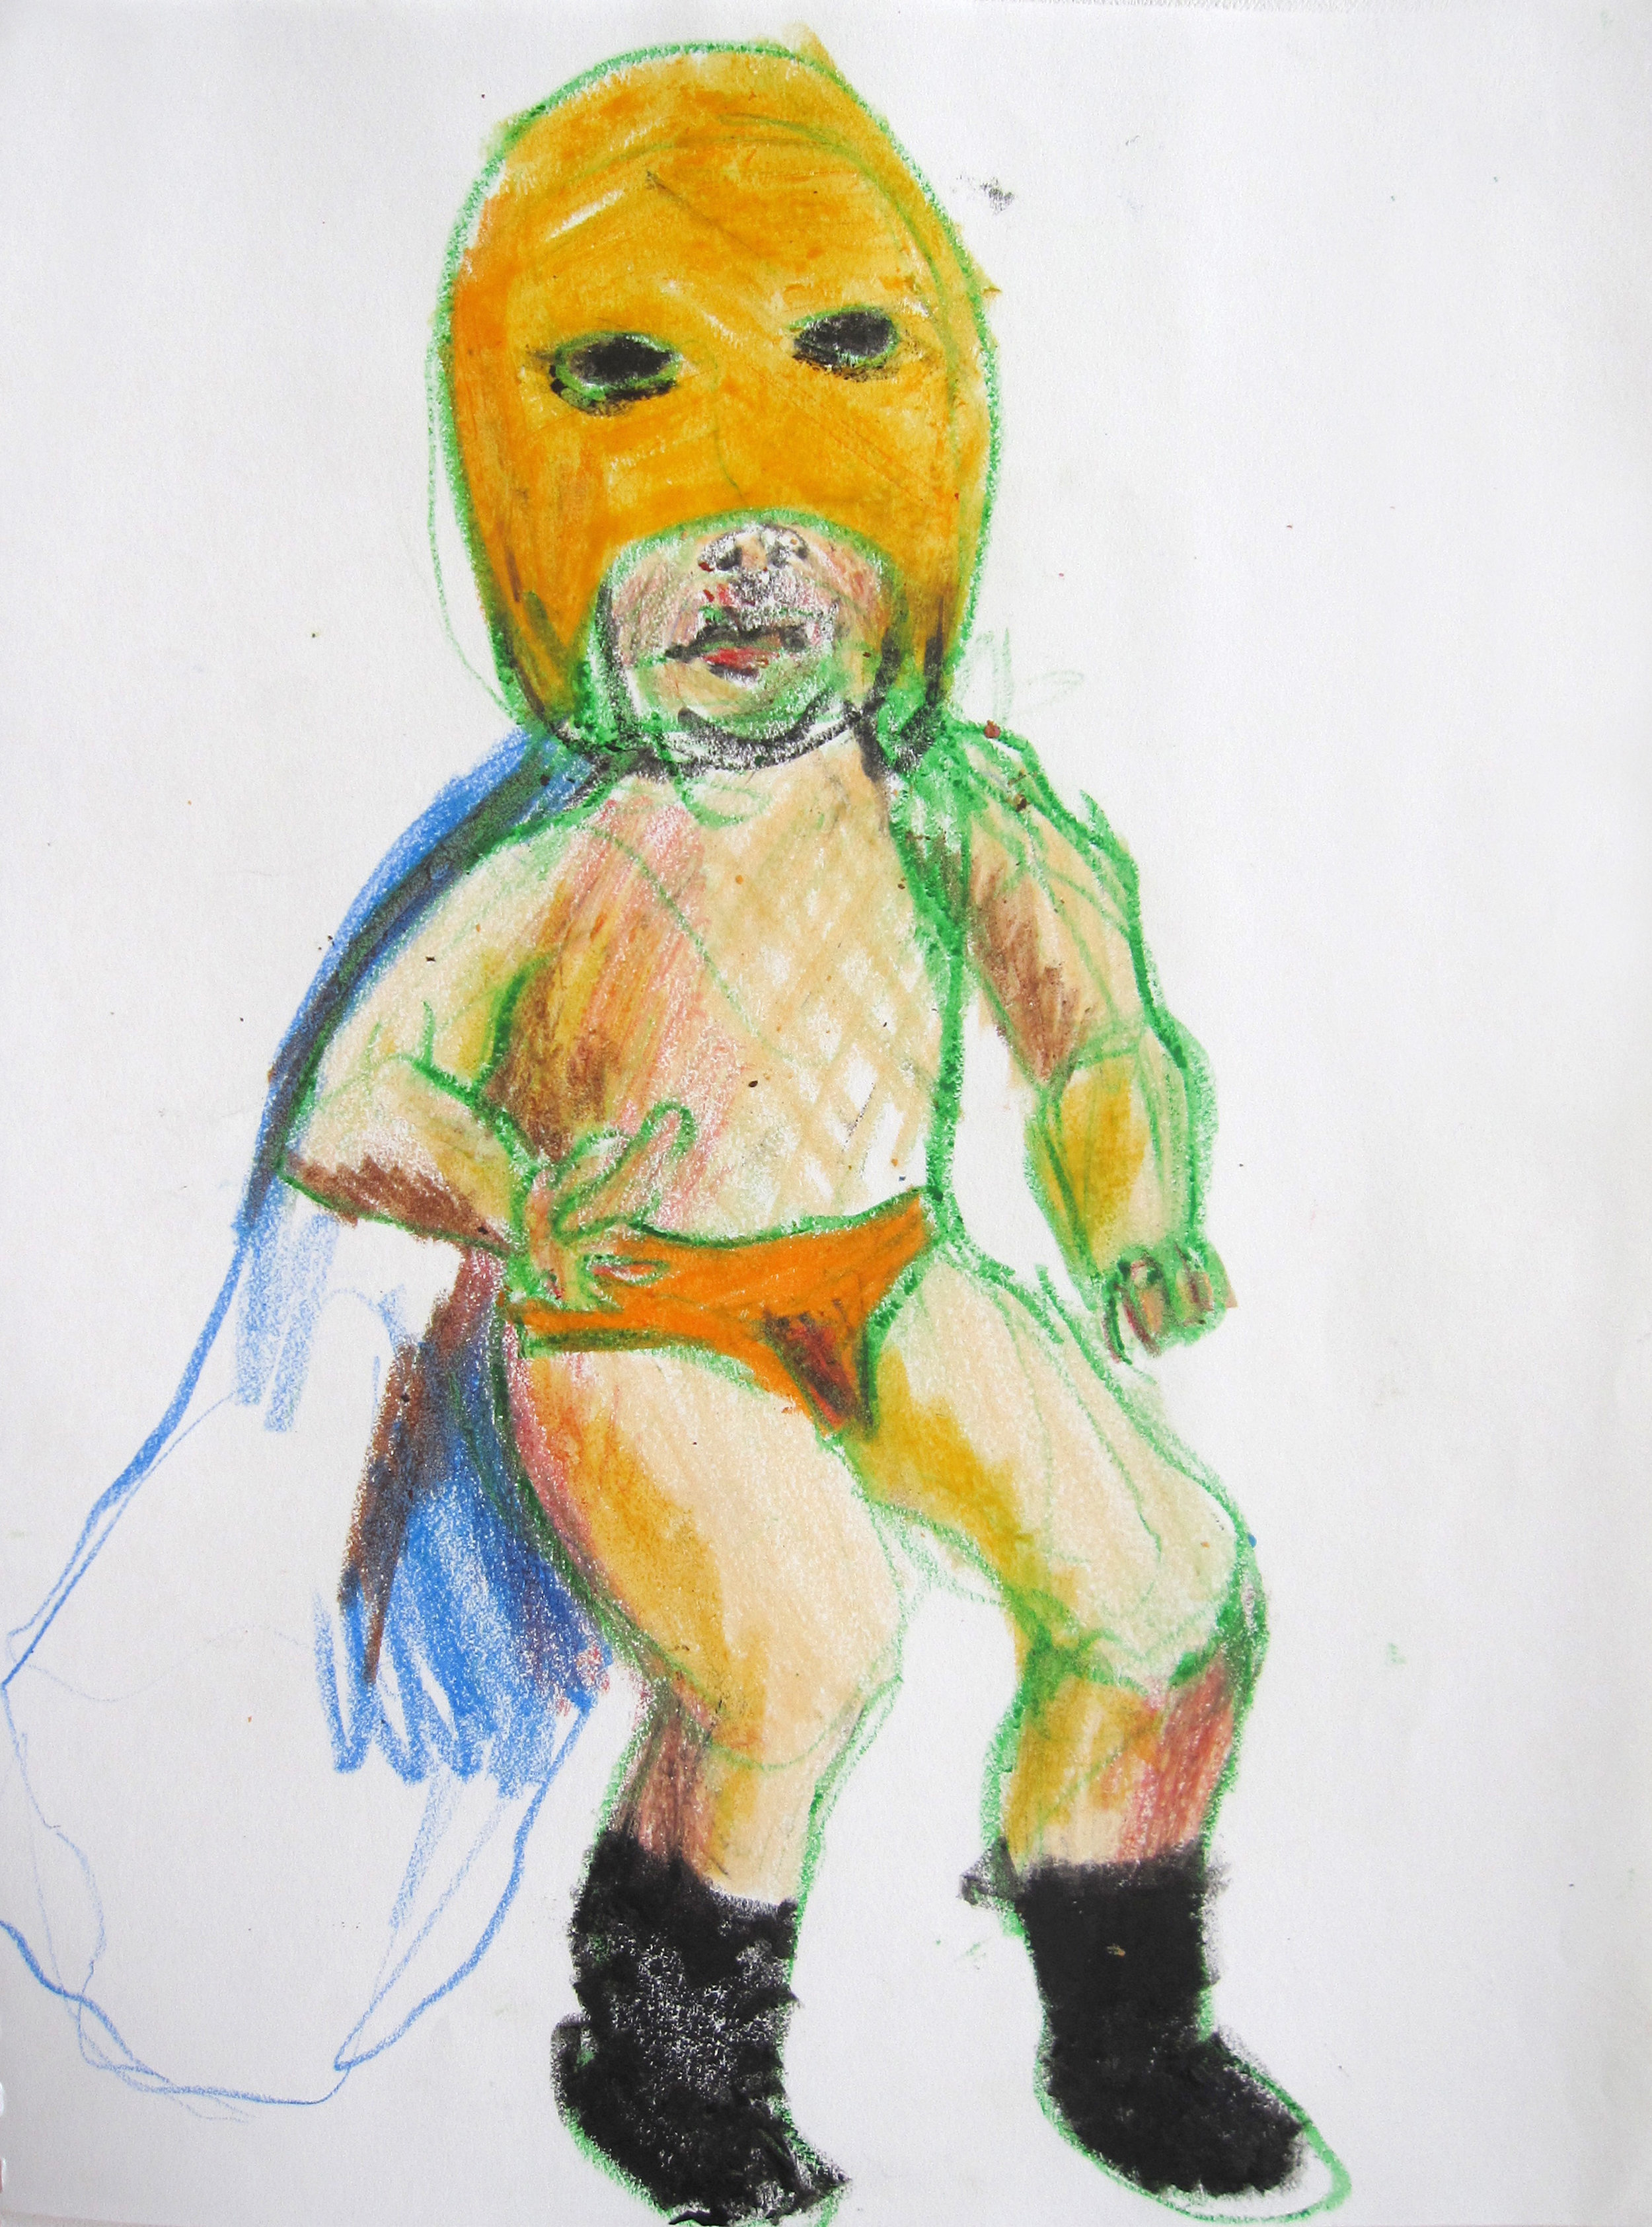 Lucha 11, 2008, Crayon on paper, 14 X11 in.